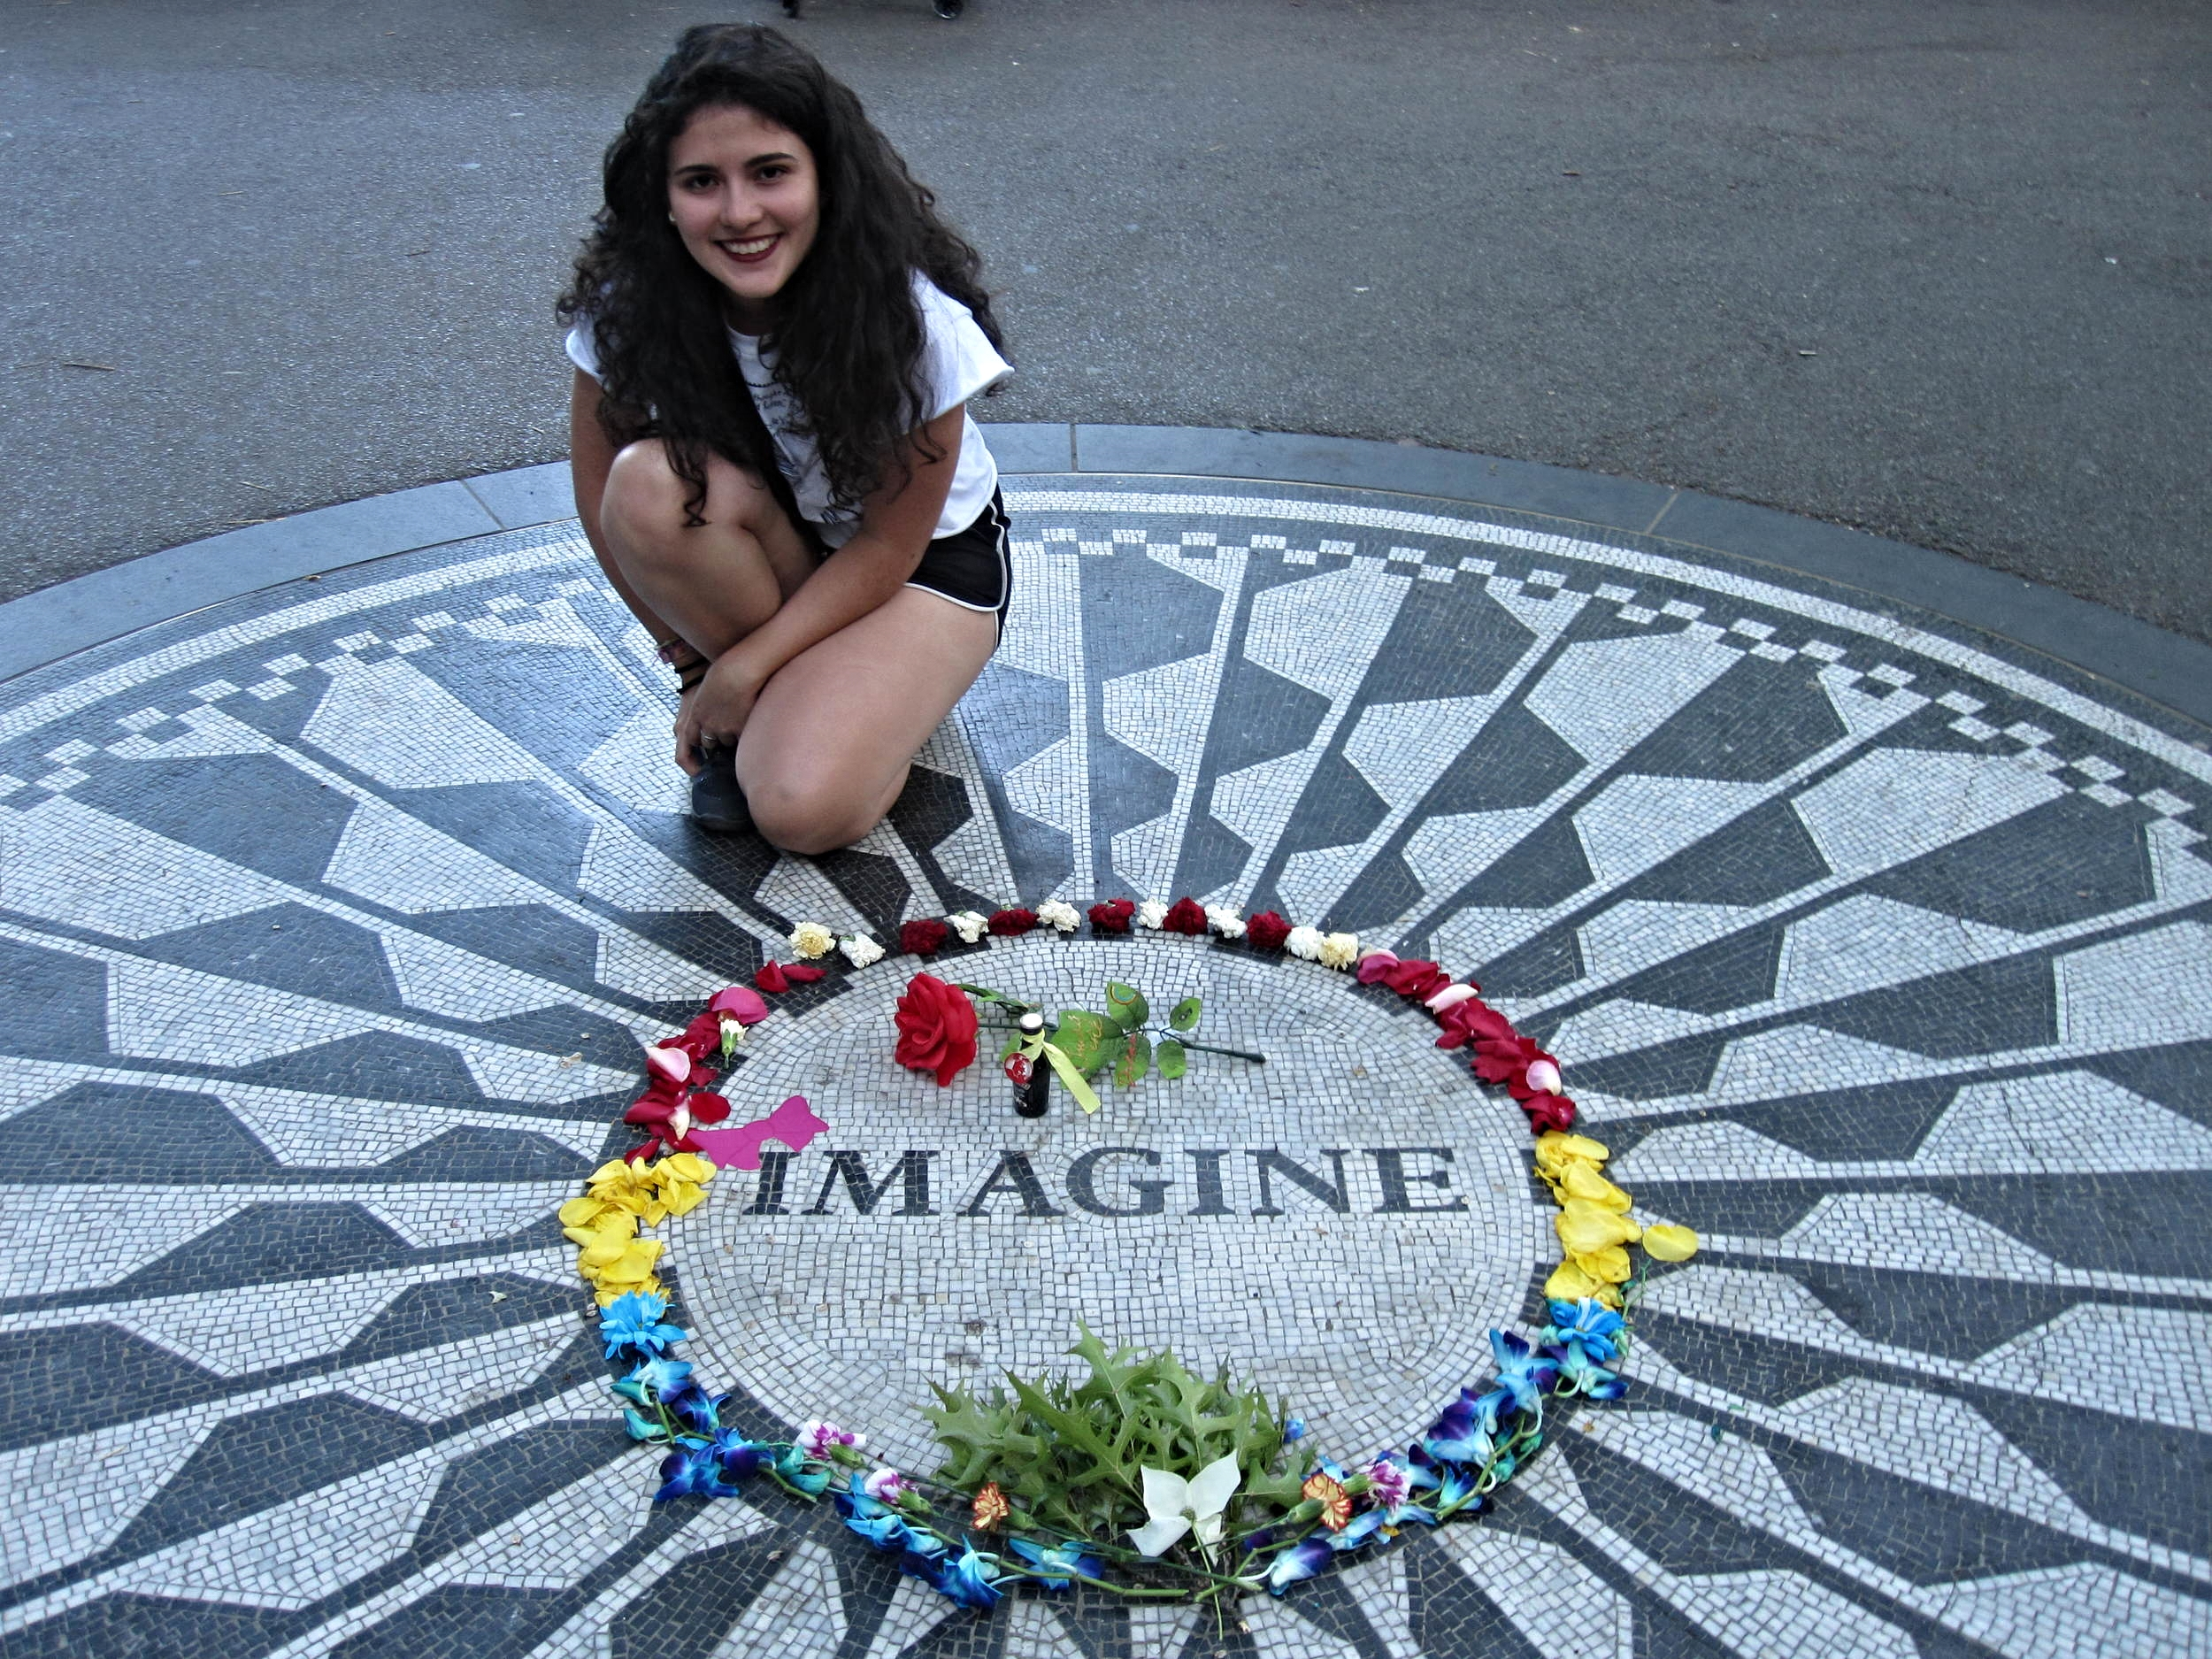 Andi posing for Pauline at the John Lennon Strawberry Fields Memorial in Central Park